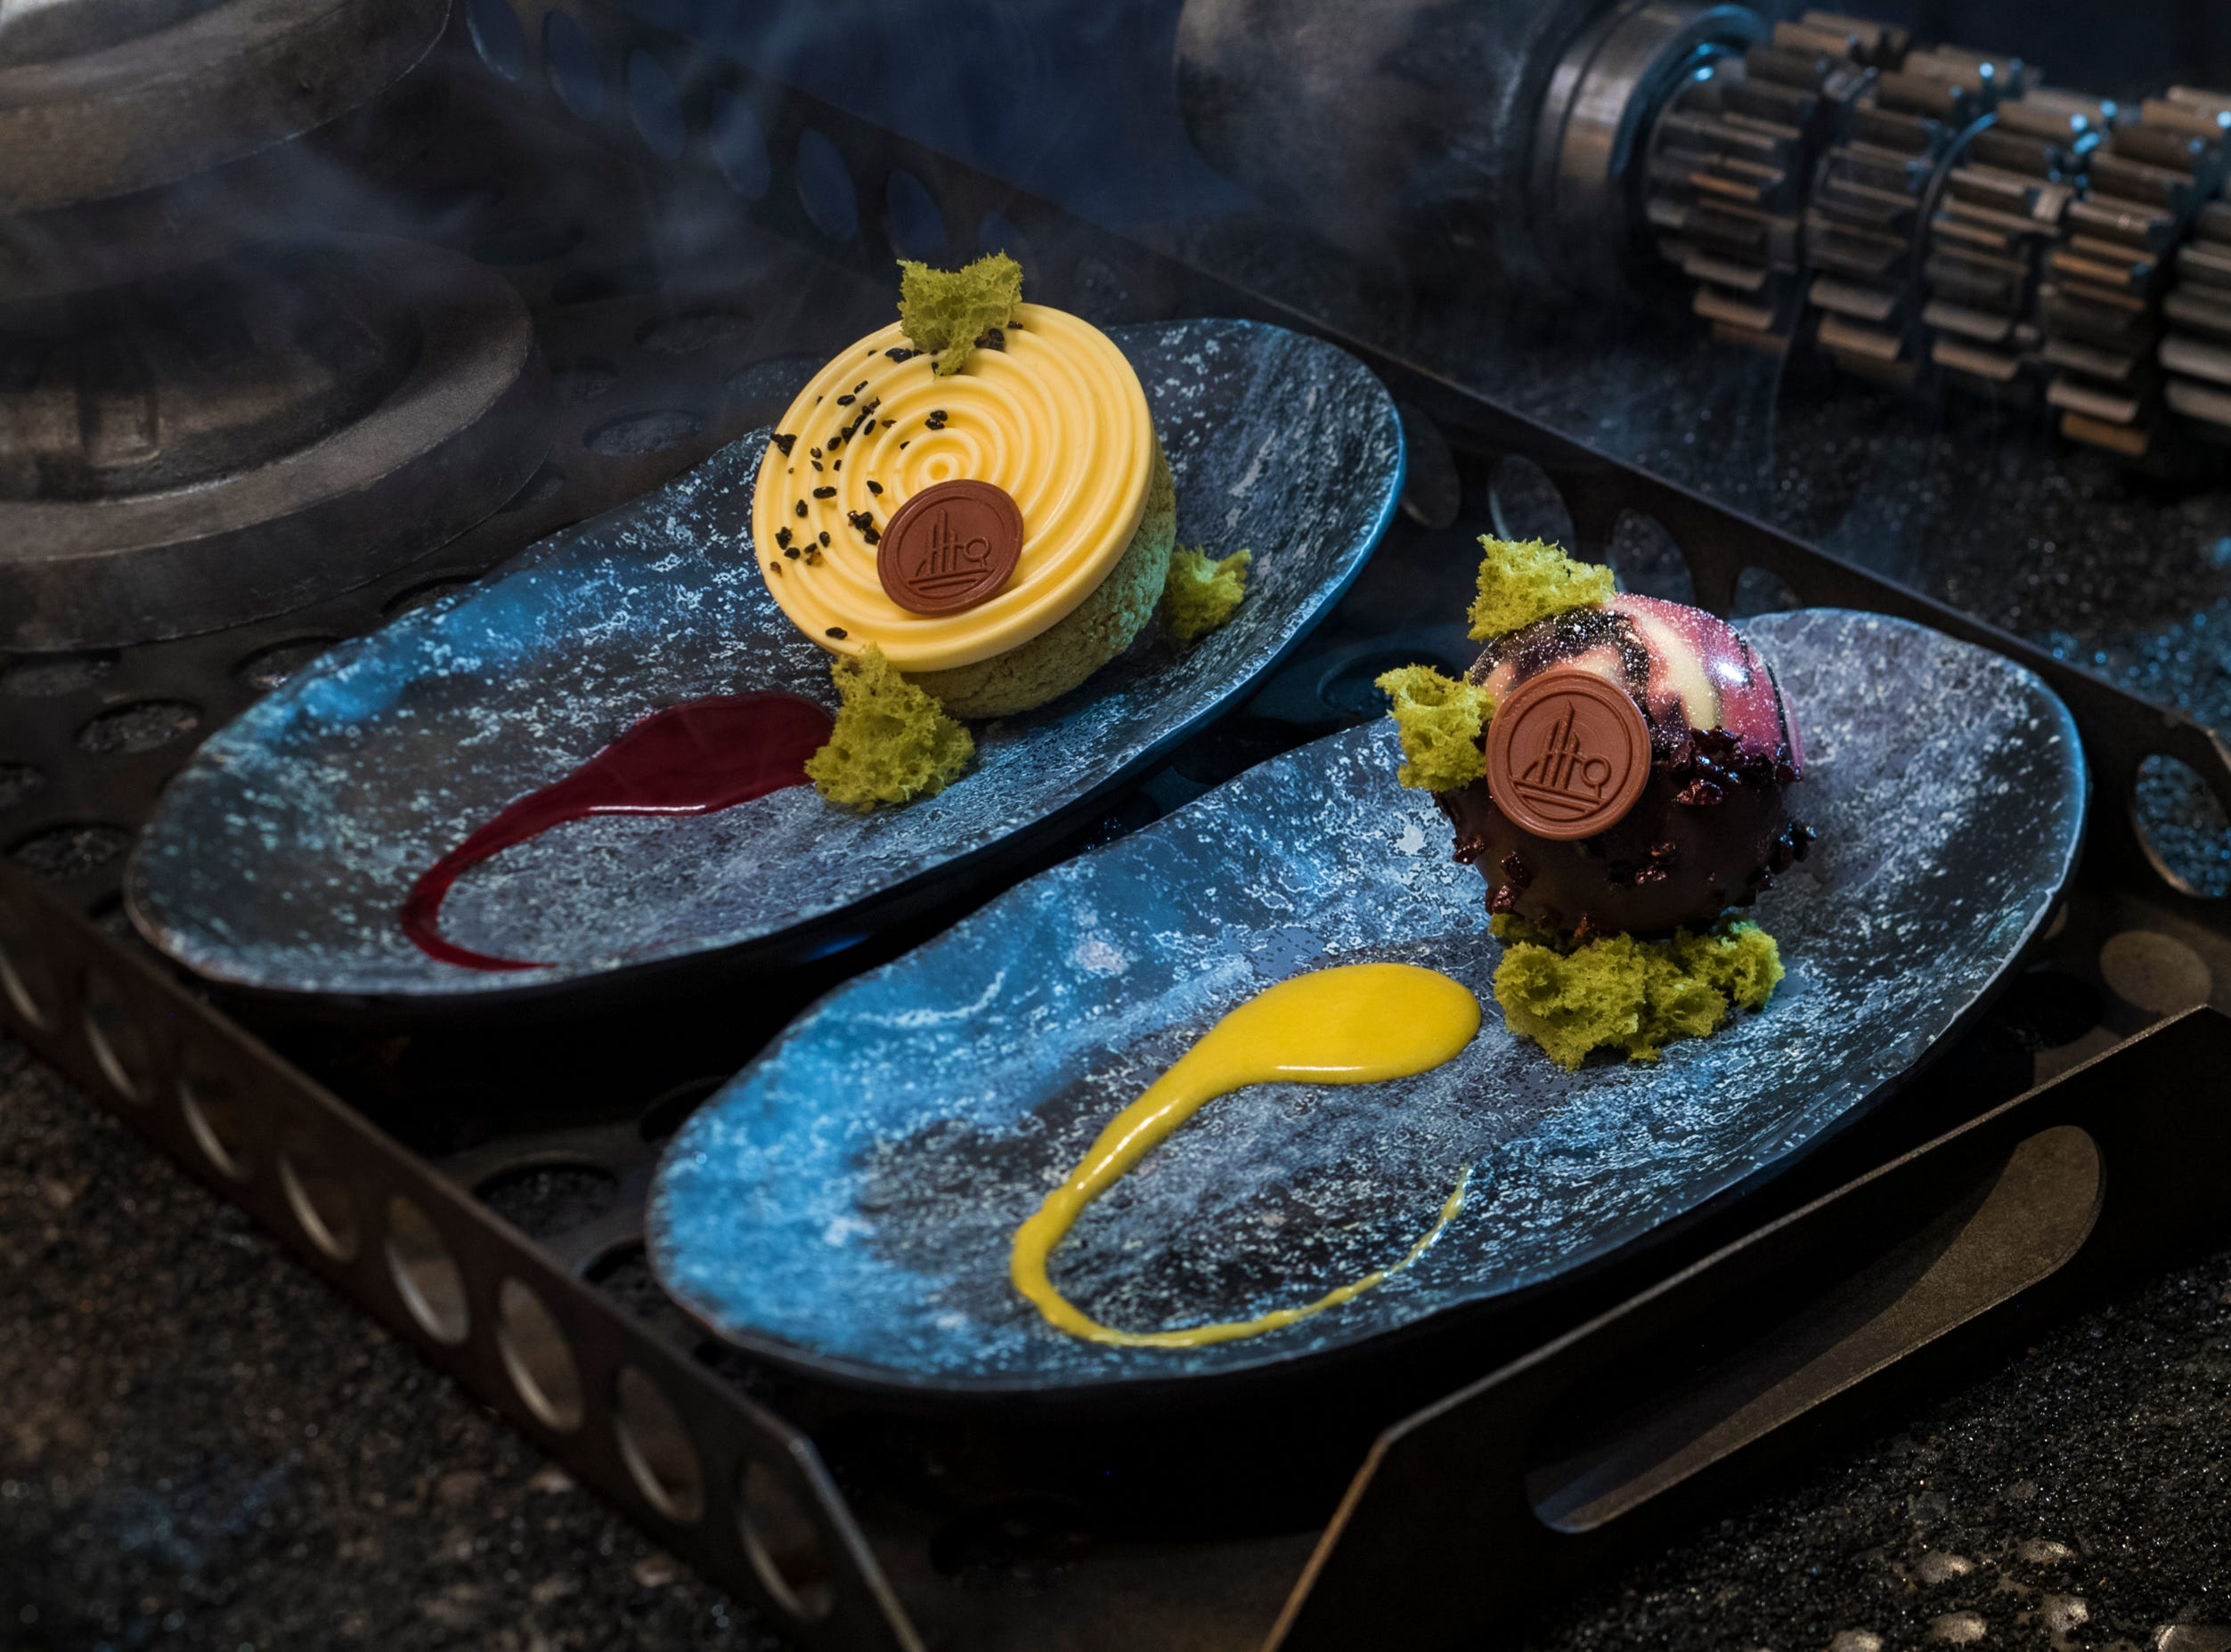 Guests can indulge in a raspberry creme puff with passion fruit mousse (left) or chocolate cake with white chocolate mouse and coffee custard (right) at Docking Bay 7 Food and Cargo inside Star Wars: Galaxy's Edge.